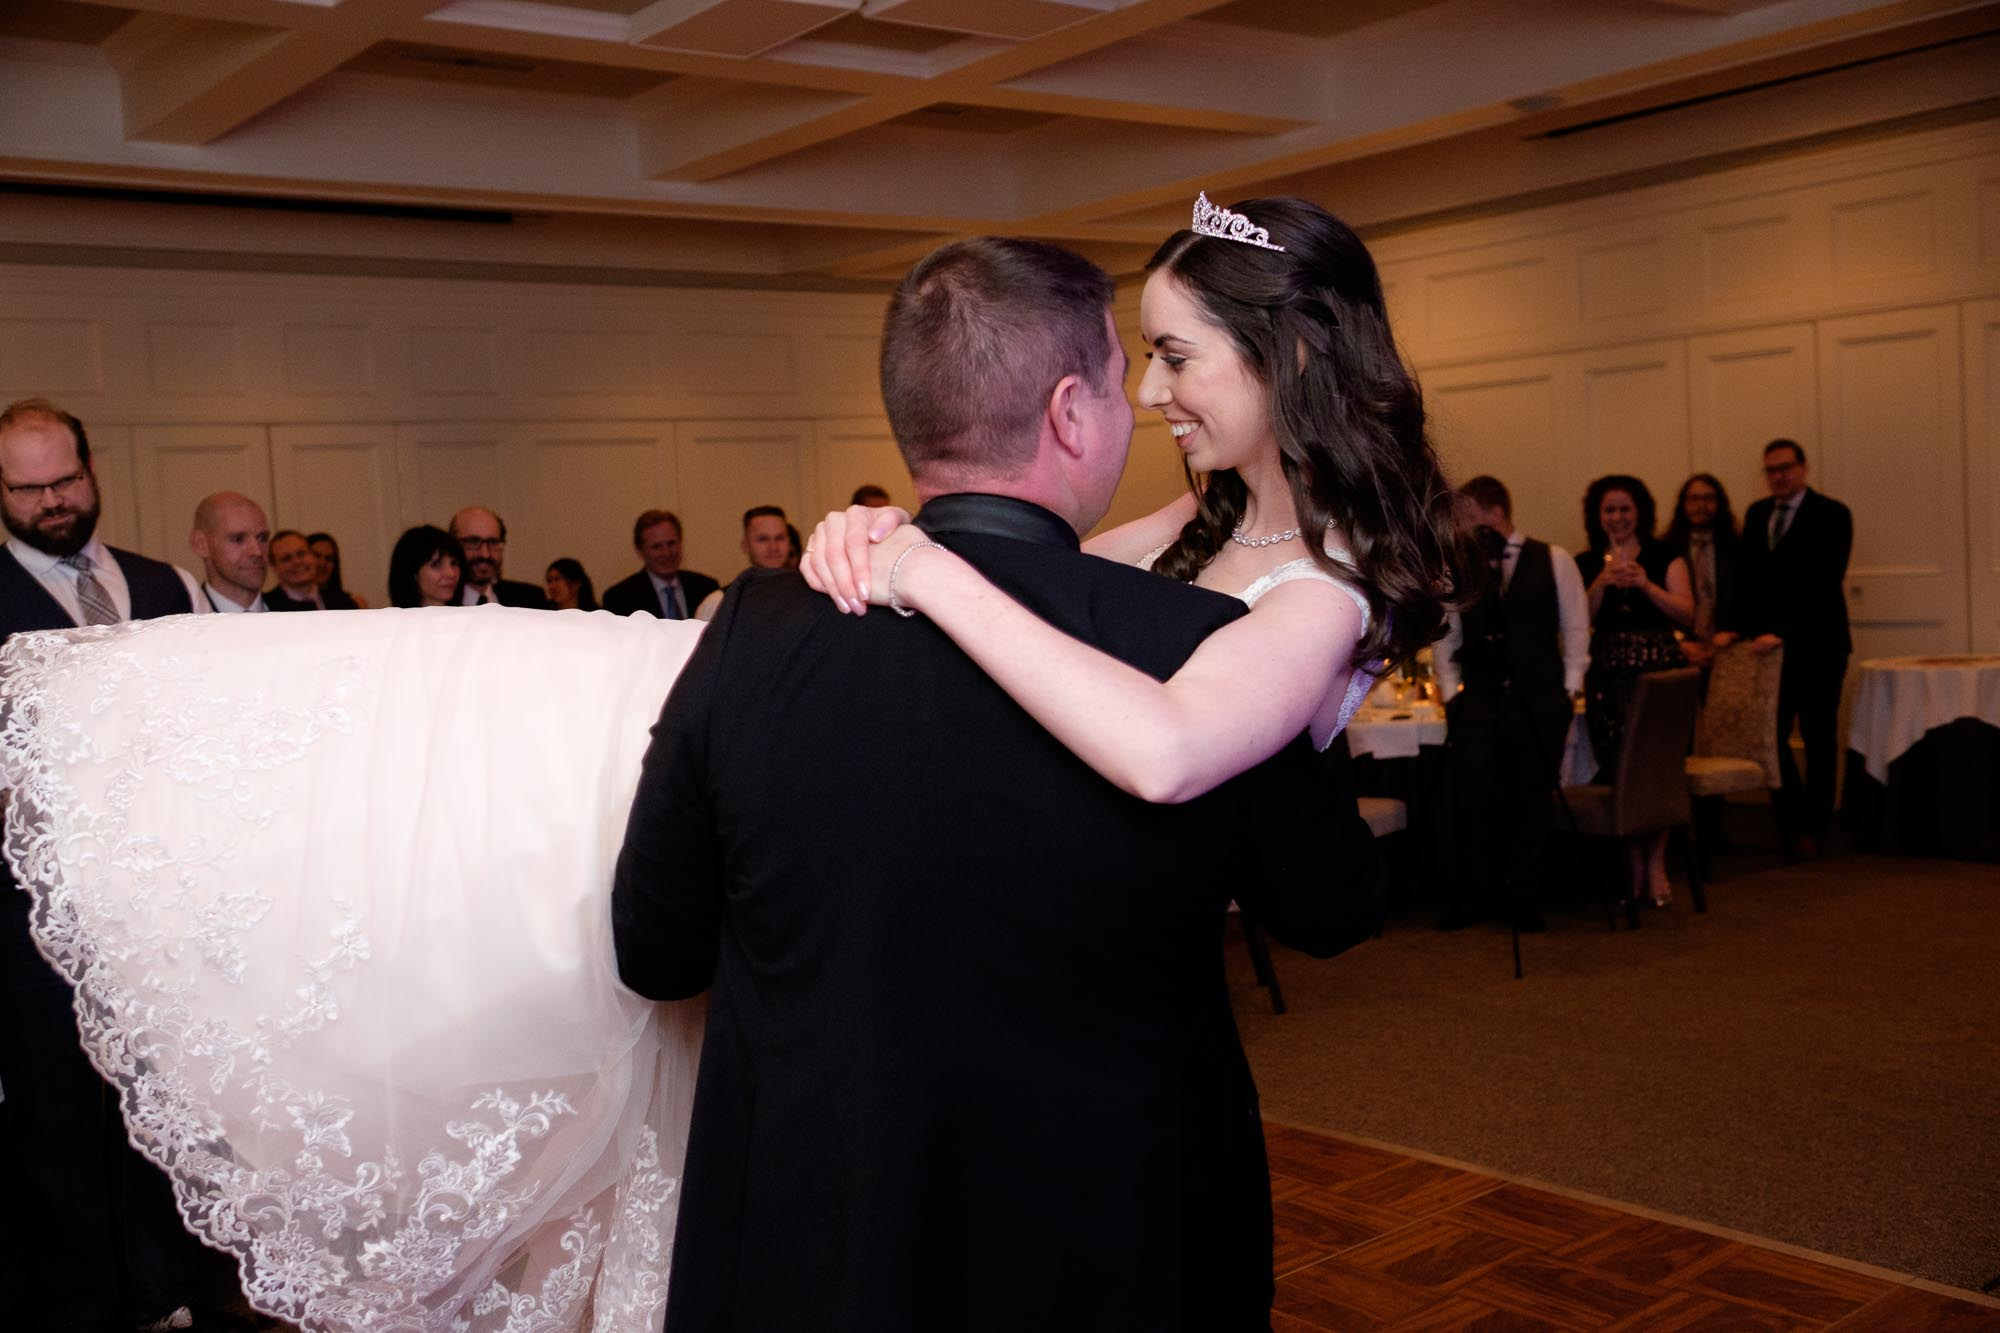 Rob and Amanda have their first dance at their wedding at Langdon Hall.